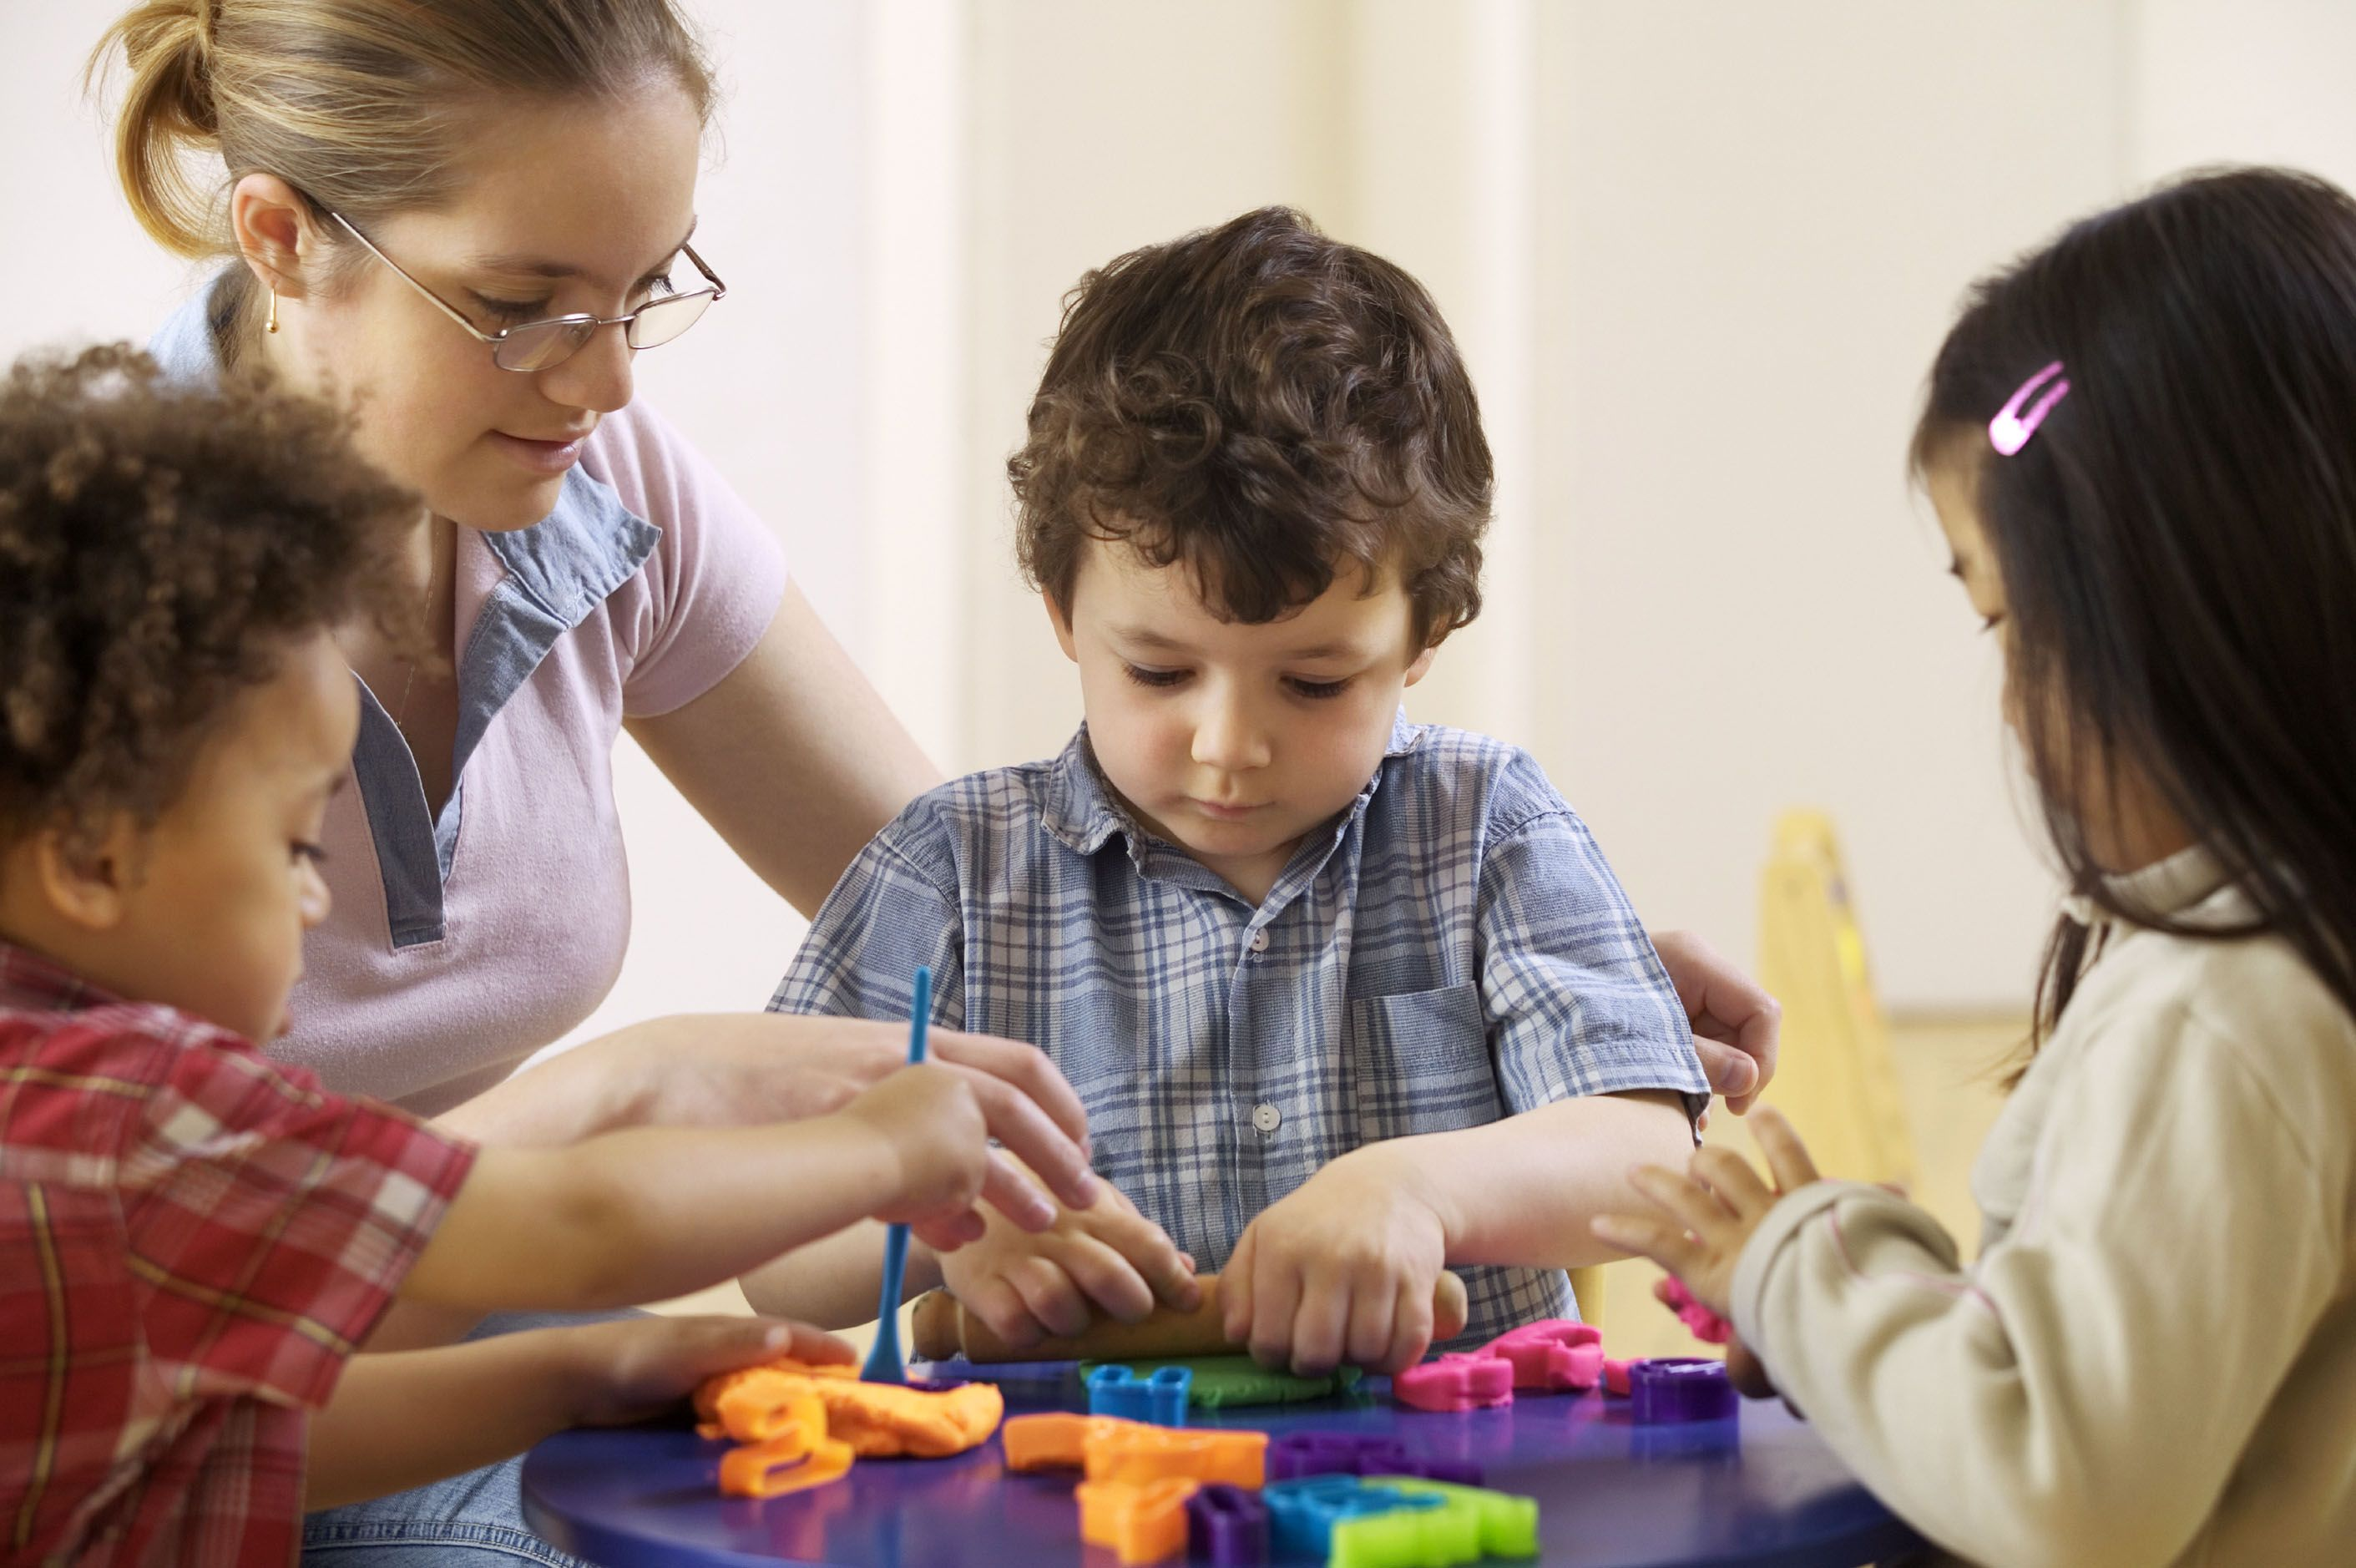 Kids with autism learn social skills through structured play